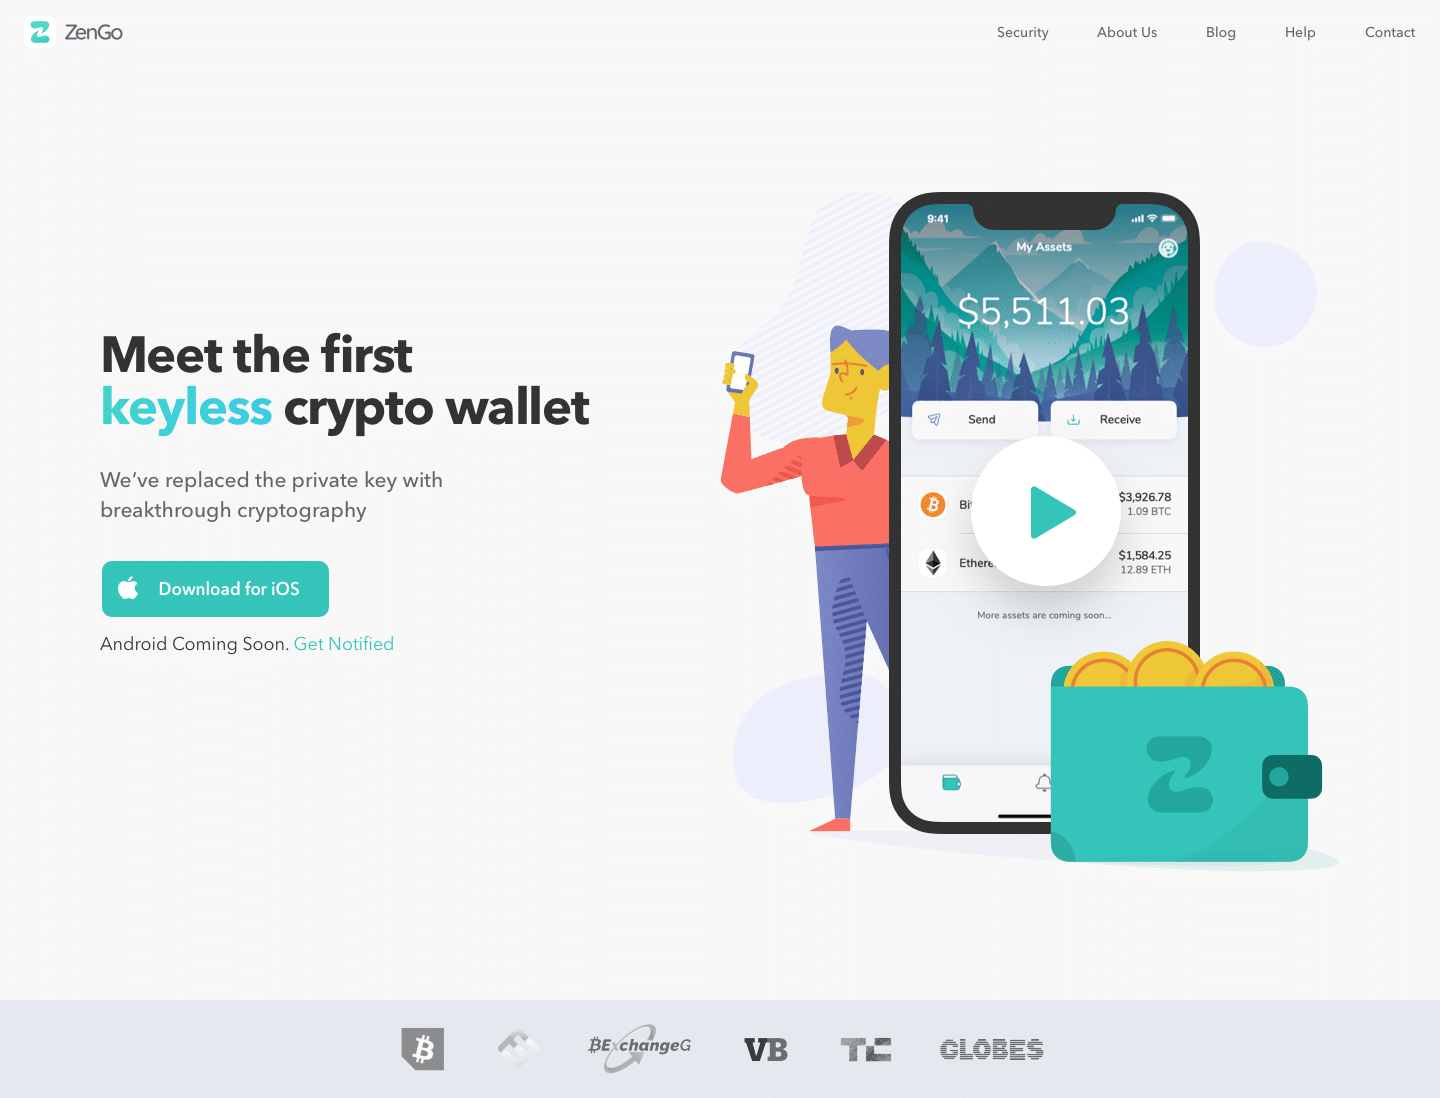 The testnet of Facebook Libra is now available on the ZenGo wallet